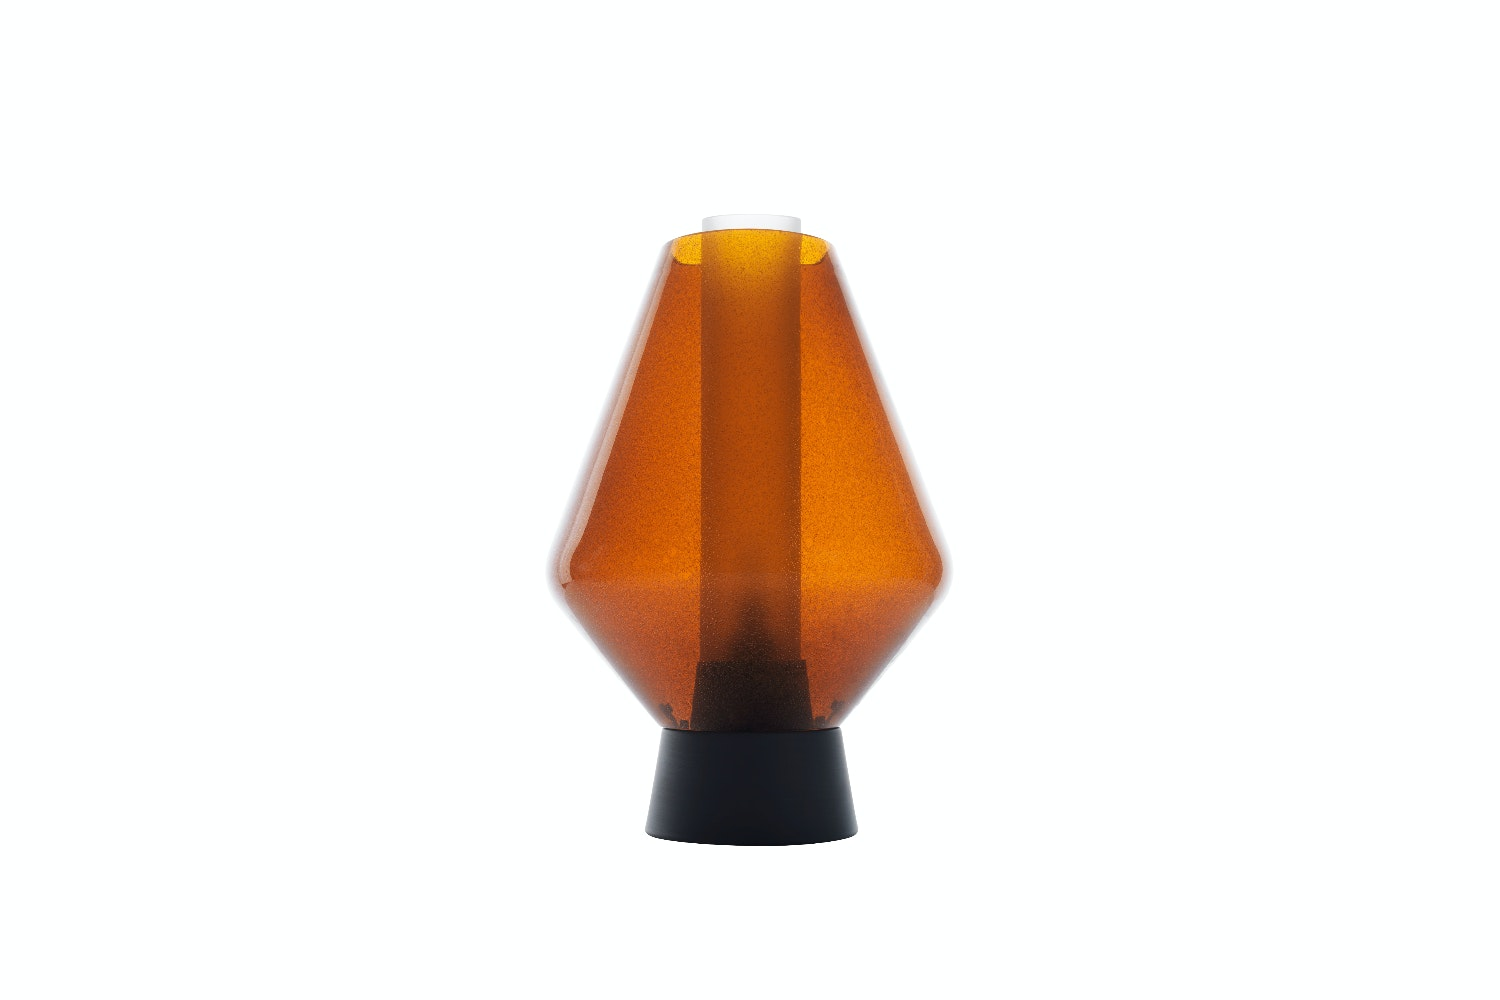 Metal Glass 1 Table Lamp by Successful Living from DIESEL for Foscarini